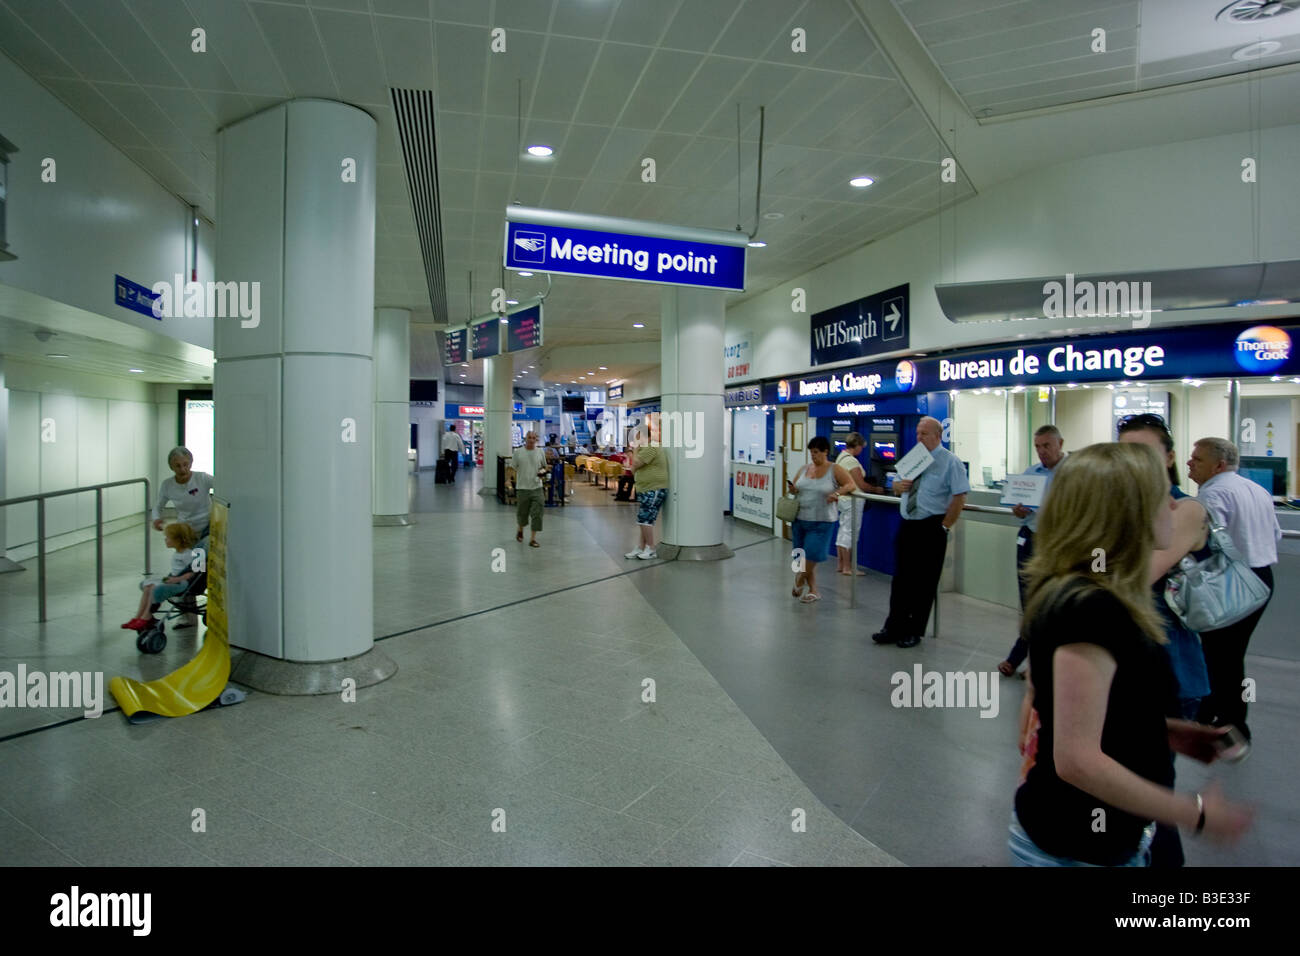 Manchester airport terminal 3 arrivals parking best airport 2018 meet and greet manchester airport terminal 3 parking i love m4hsunfo